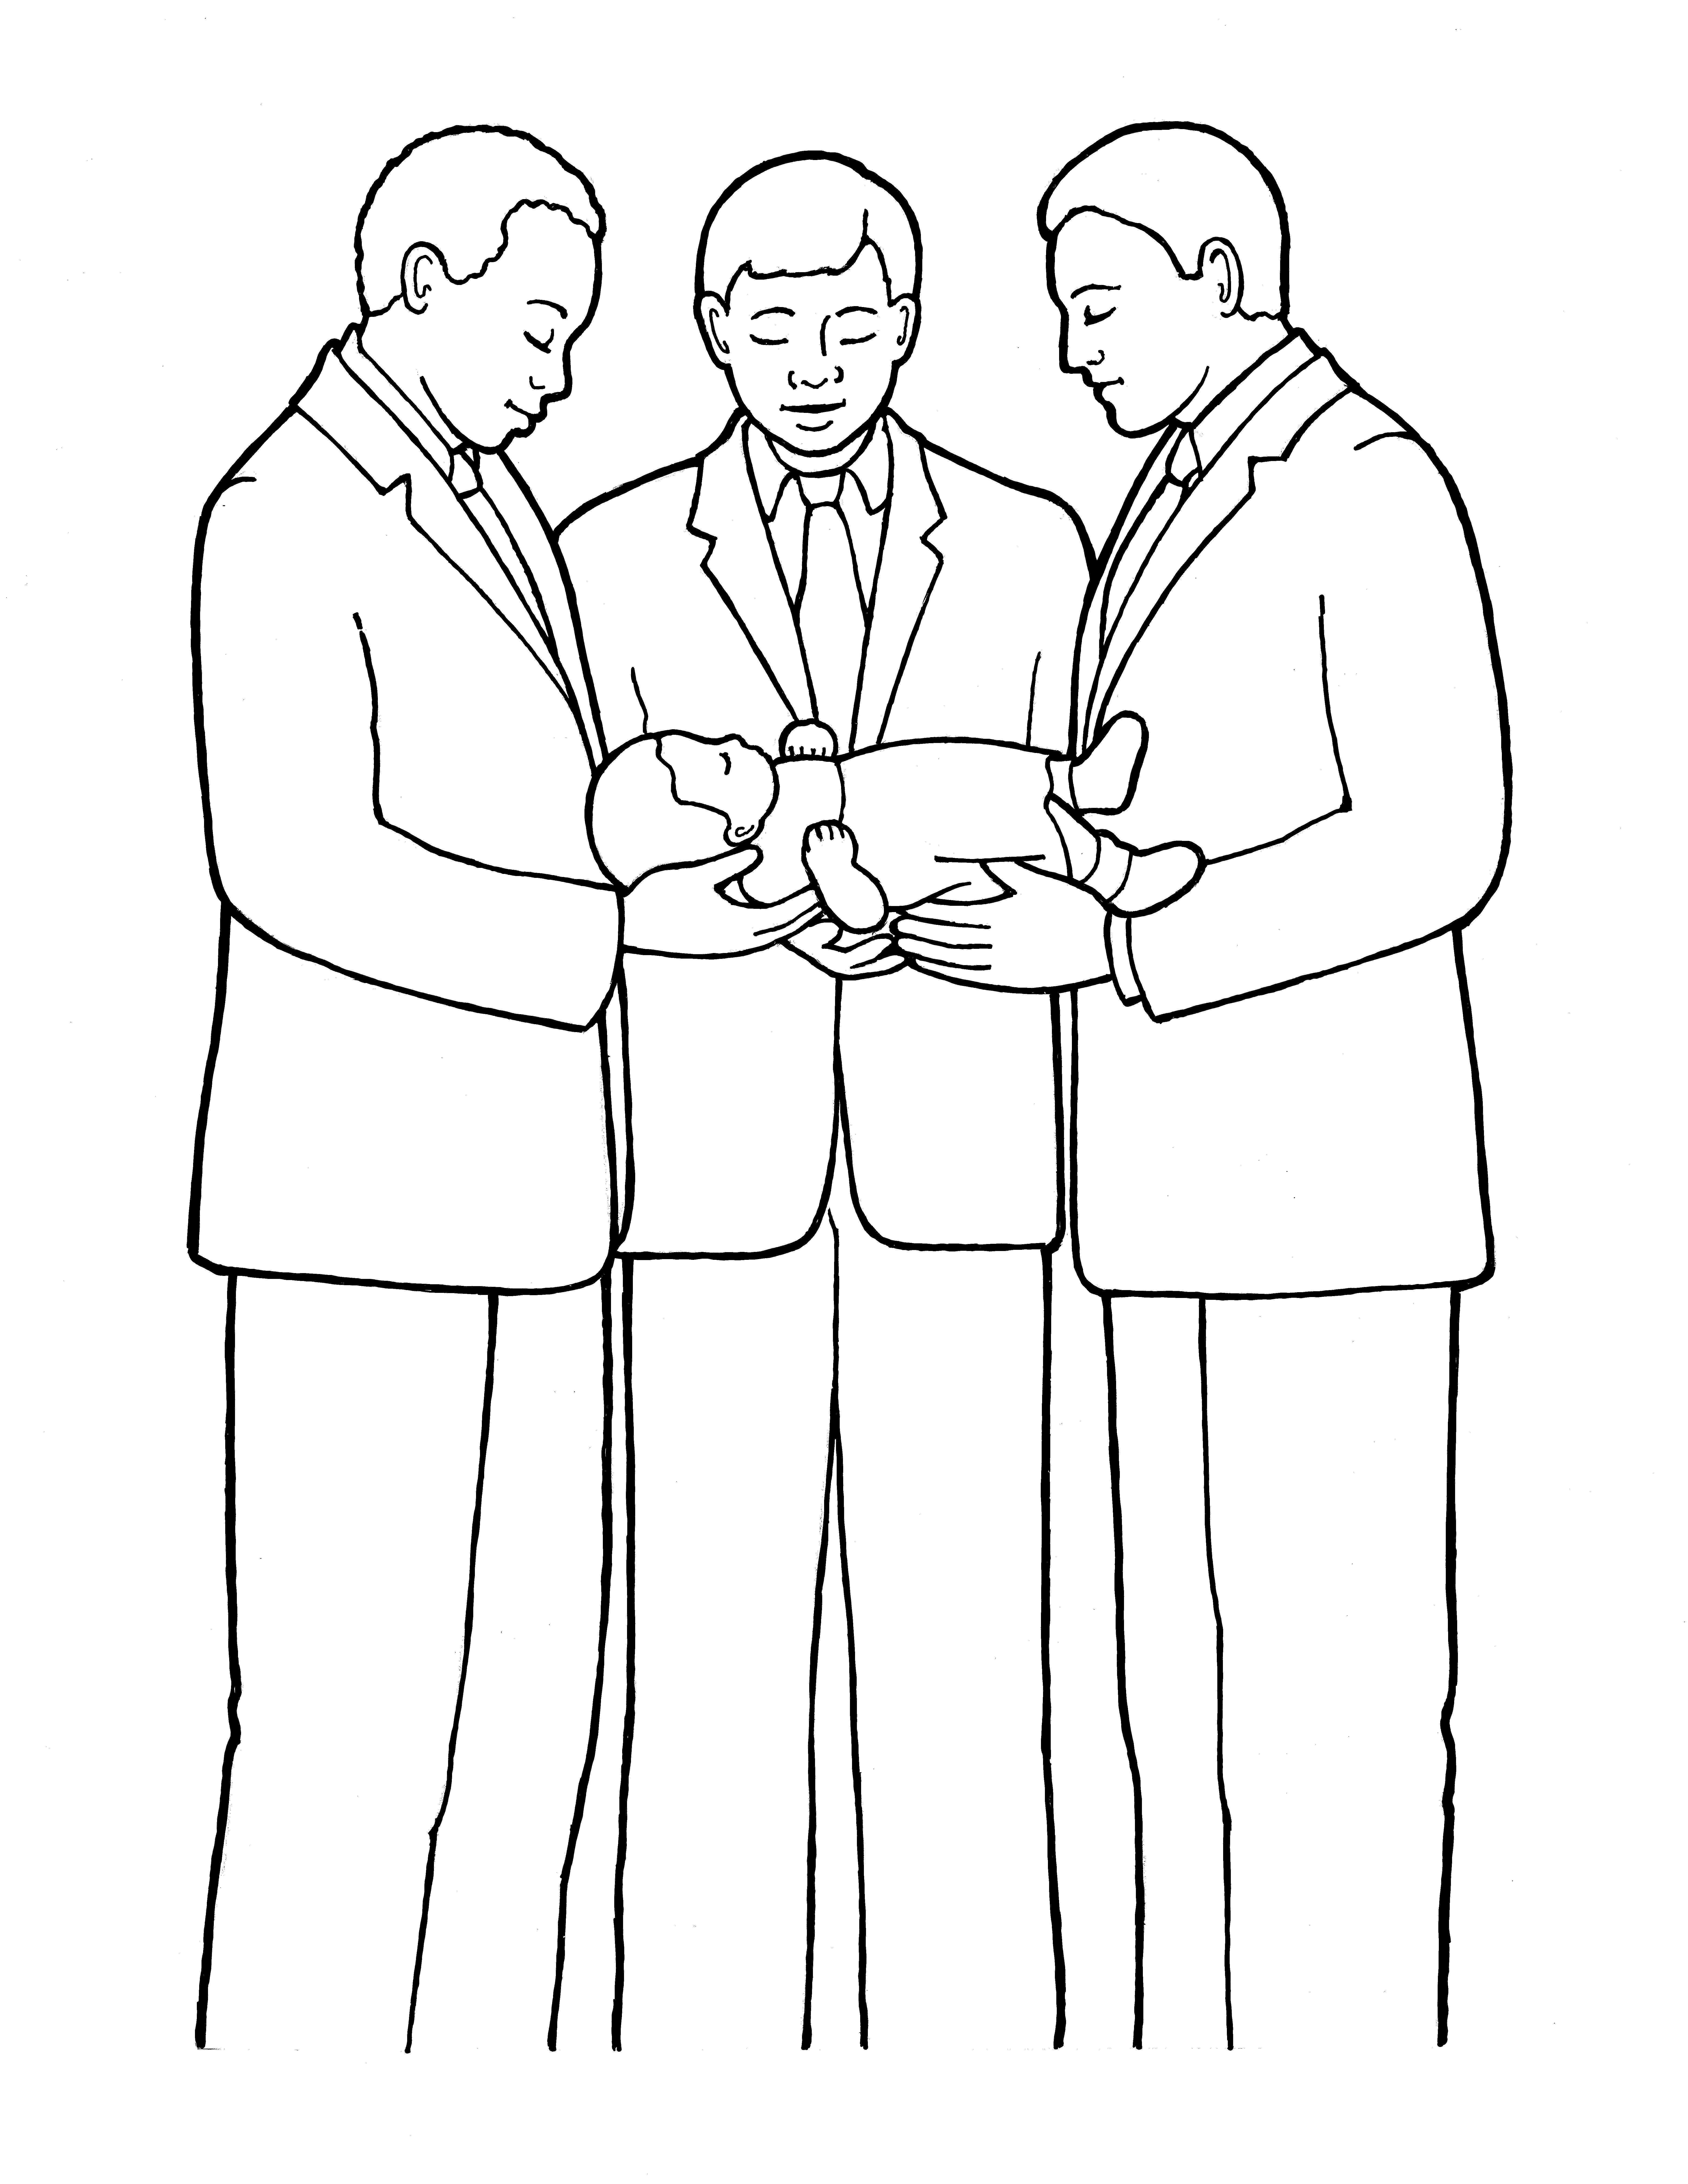 An illustration of three men blessing a small baby, from the nursery manual Behold Your Little Ones (2008), page 119.